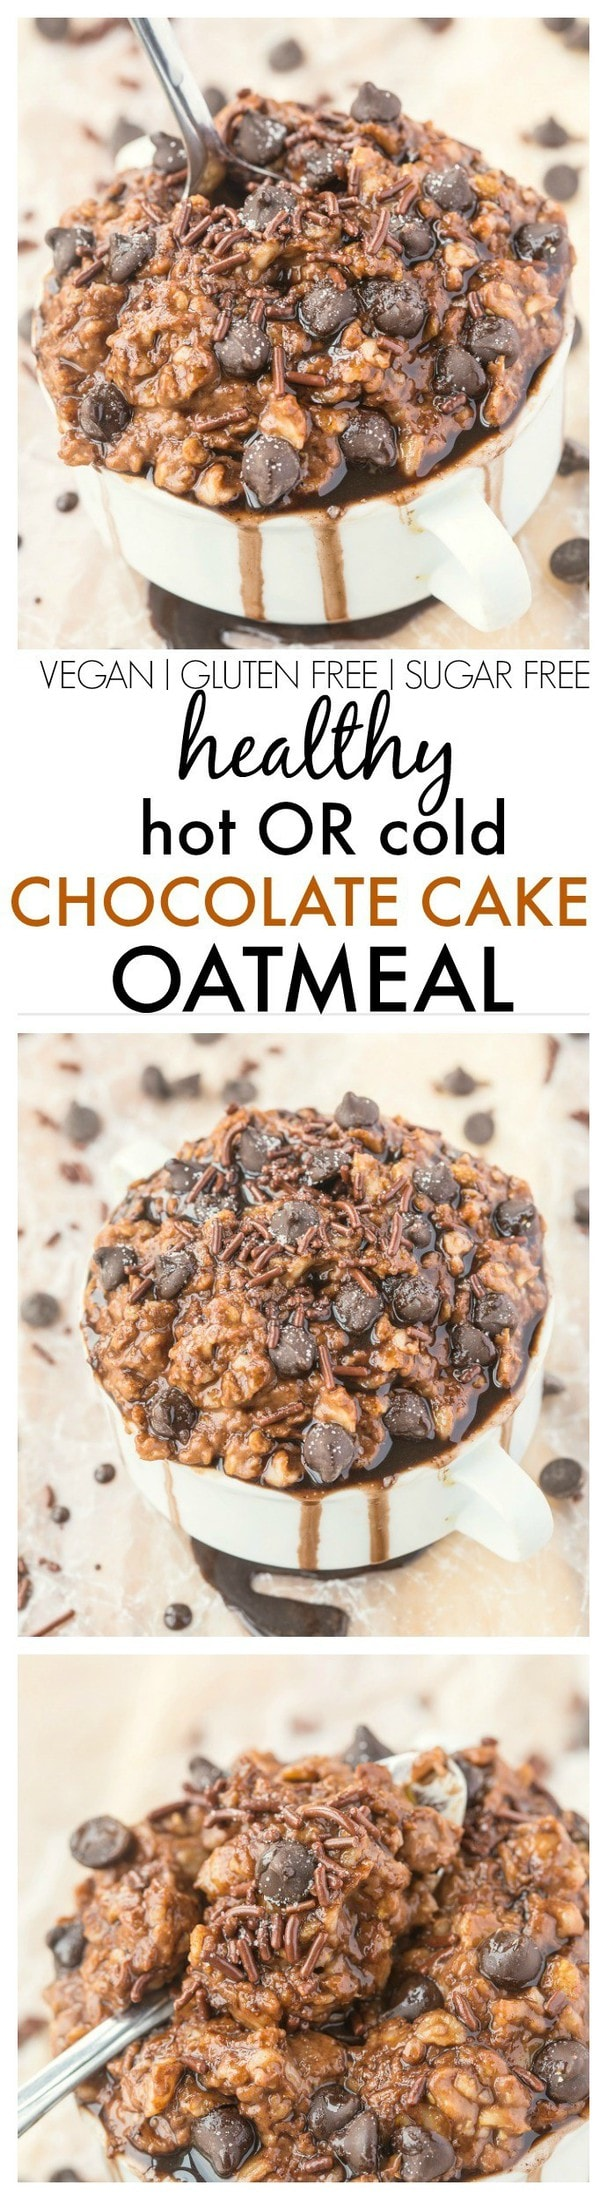 Healthy Chocolate Cake Oatmeal which can be enjoyed hot OR cold (refrigerator style!) and is completely sugar free! {vegan, gluten free, high protein recipe}- thebigmansworld.com